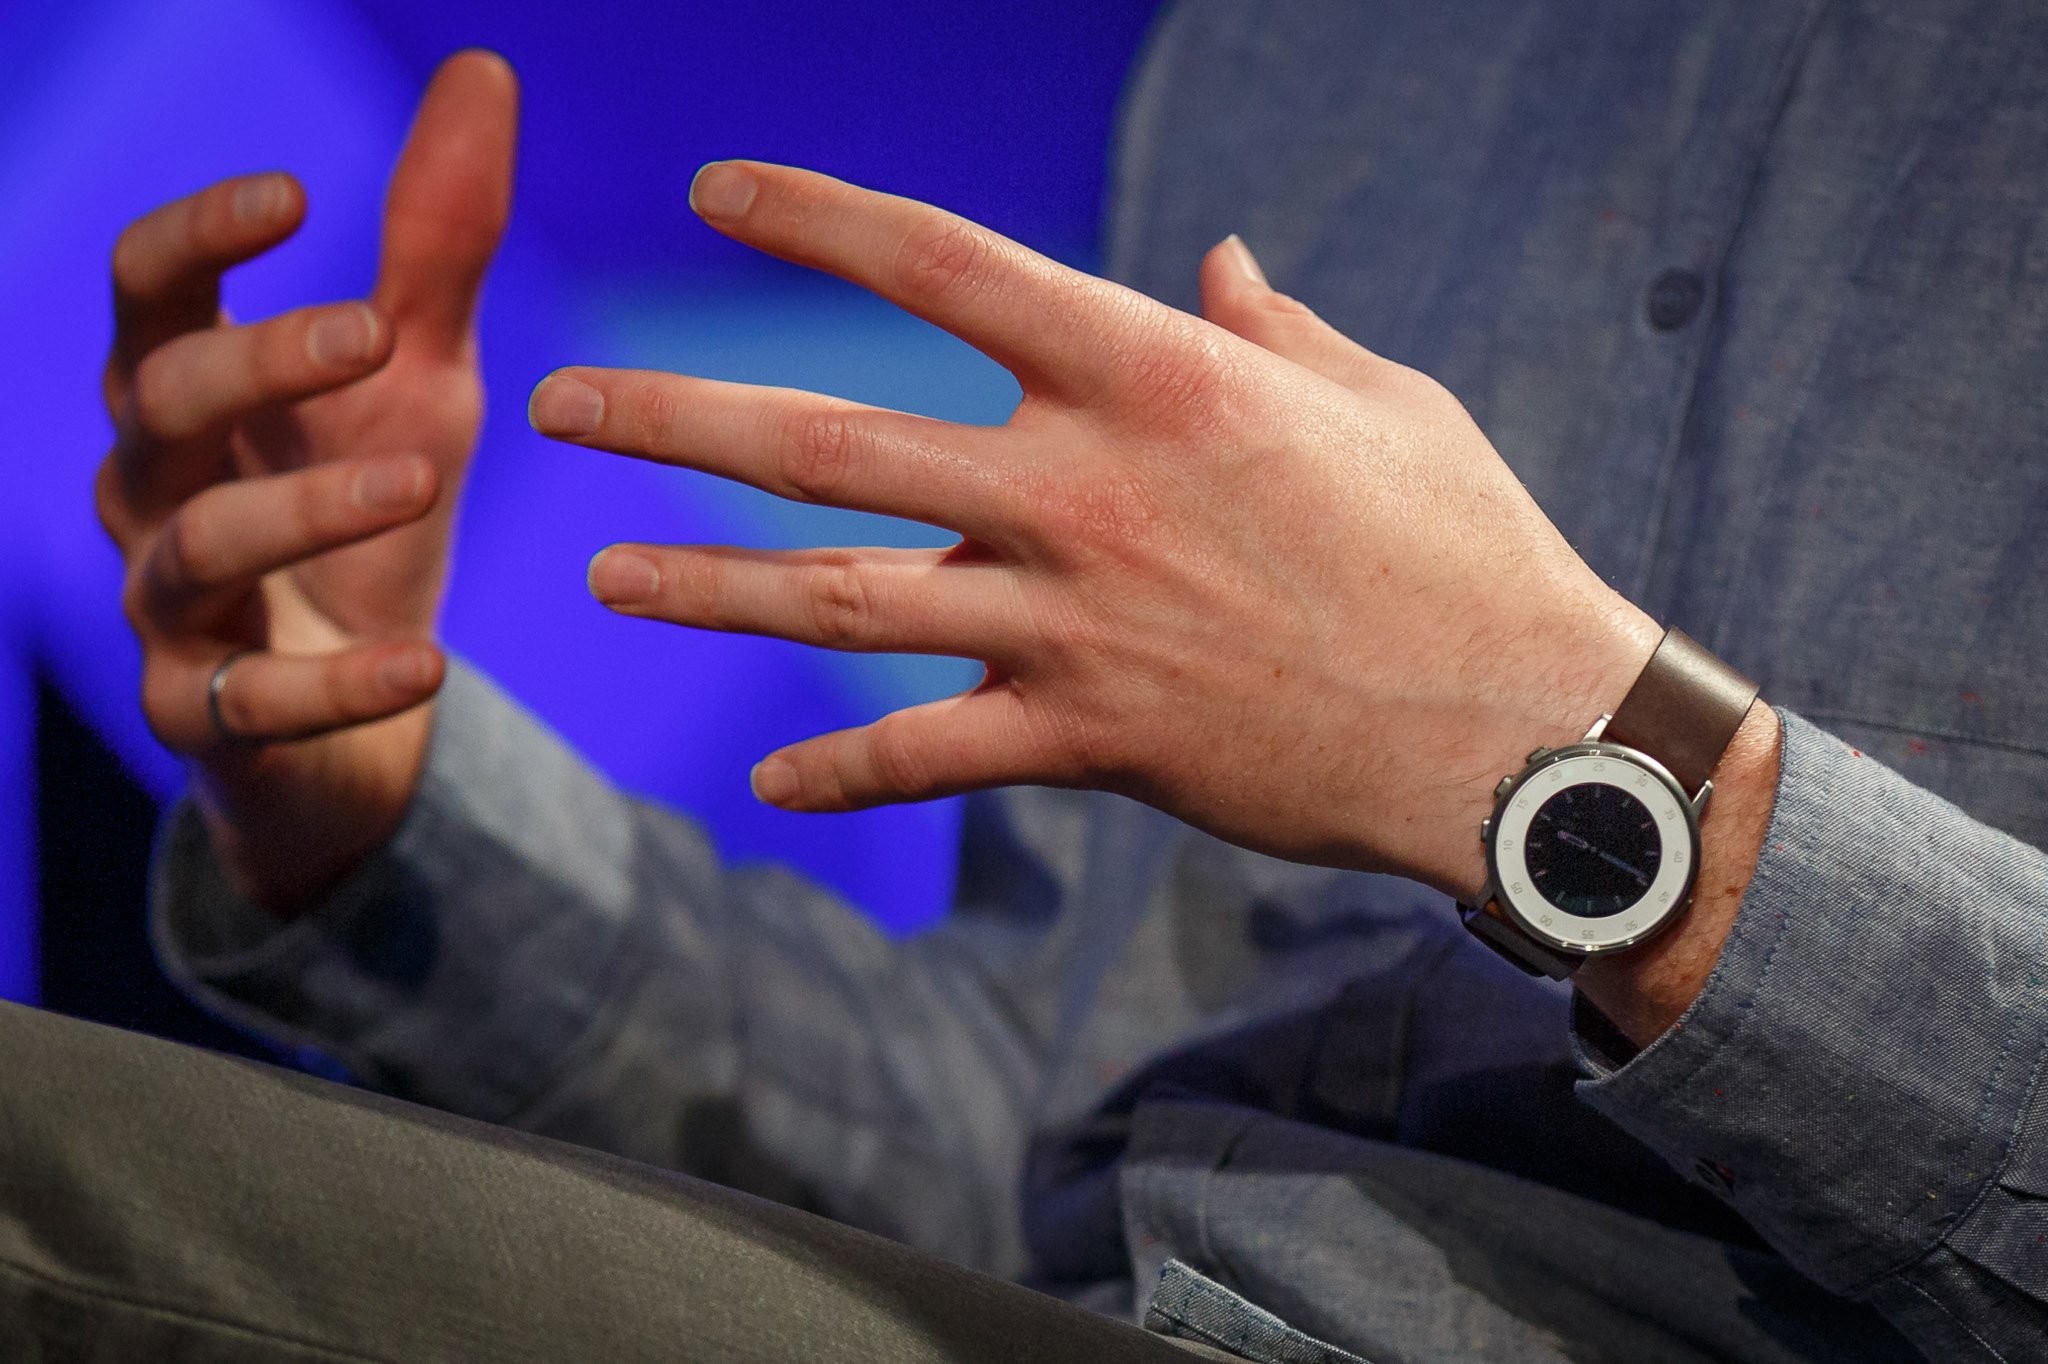 Pebble CEO Eric Migicovsky wears a Pebble Time Round watch at the Web Summit tech conference.